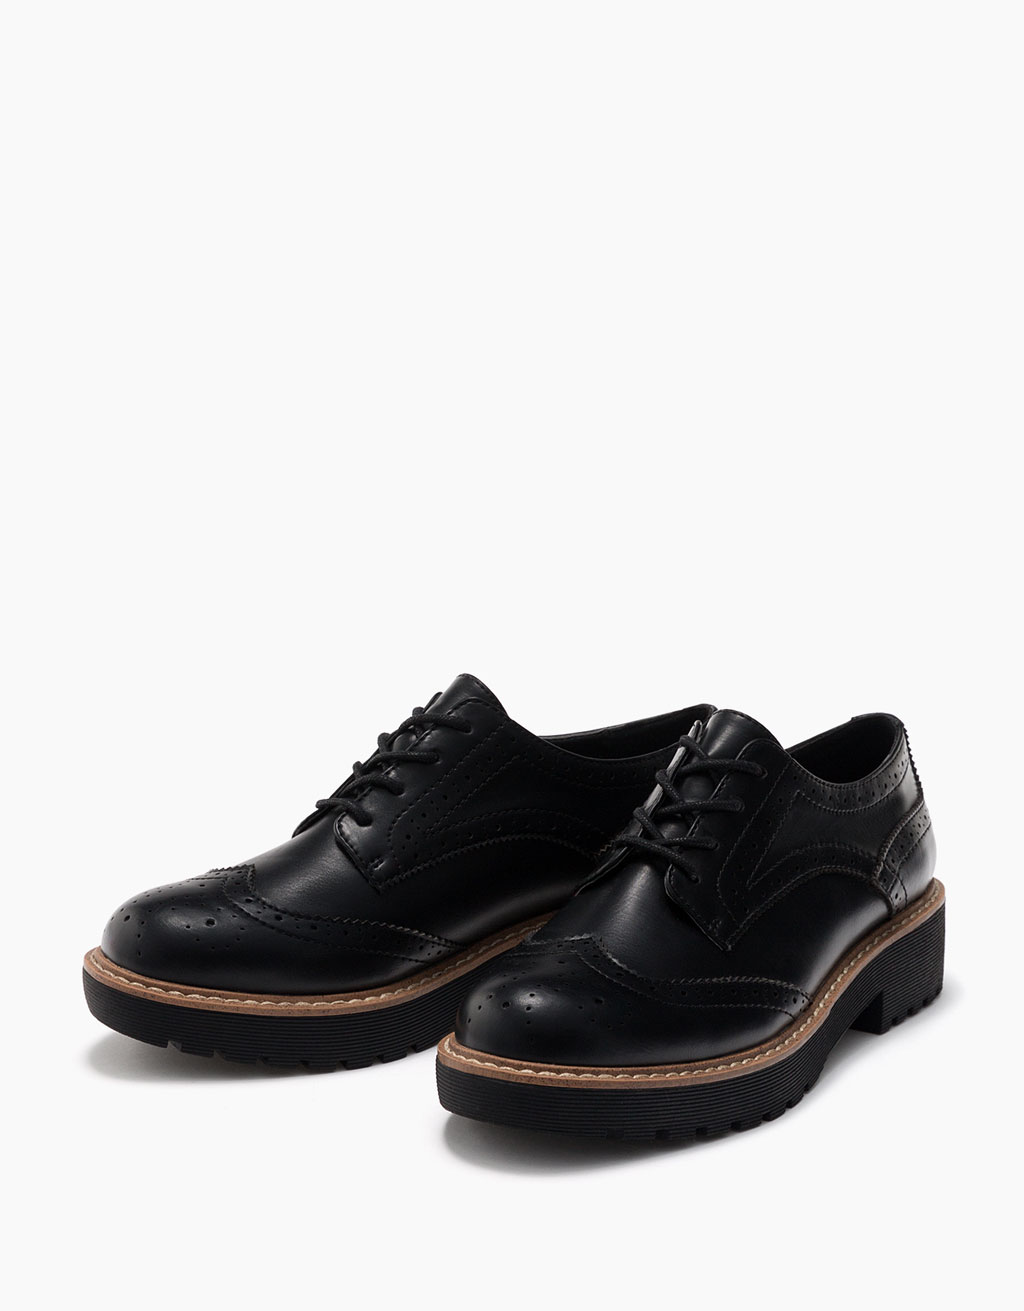 Perforated dress shoes